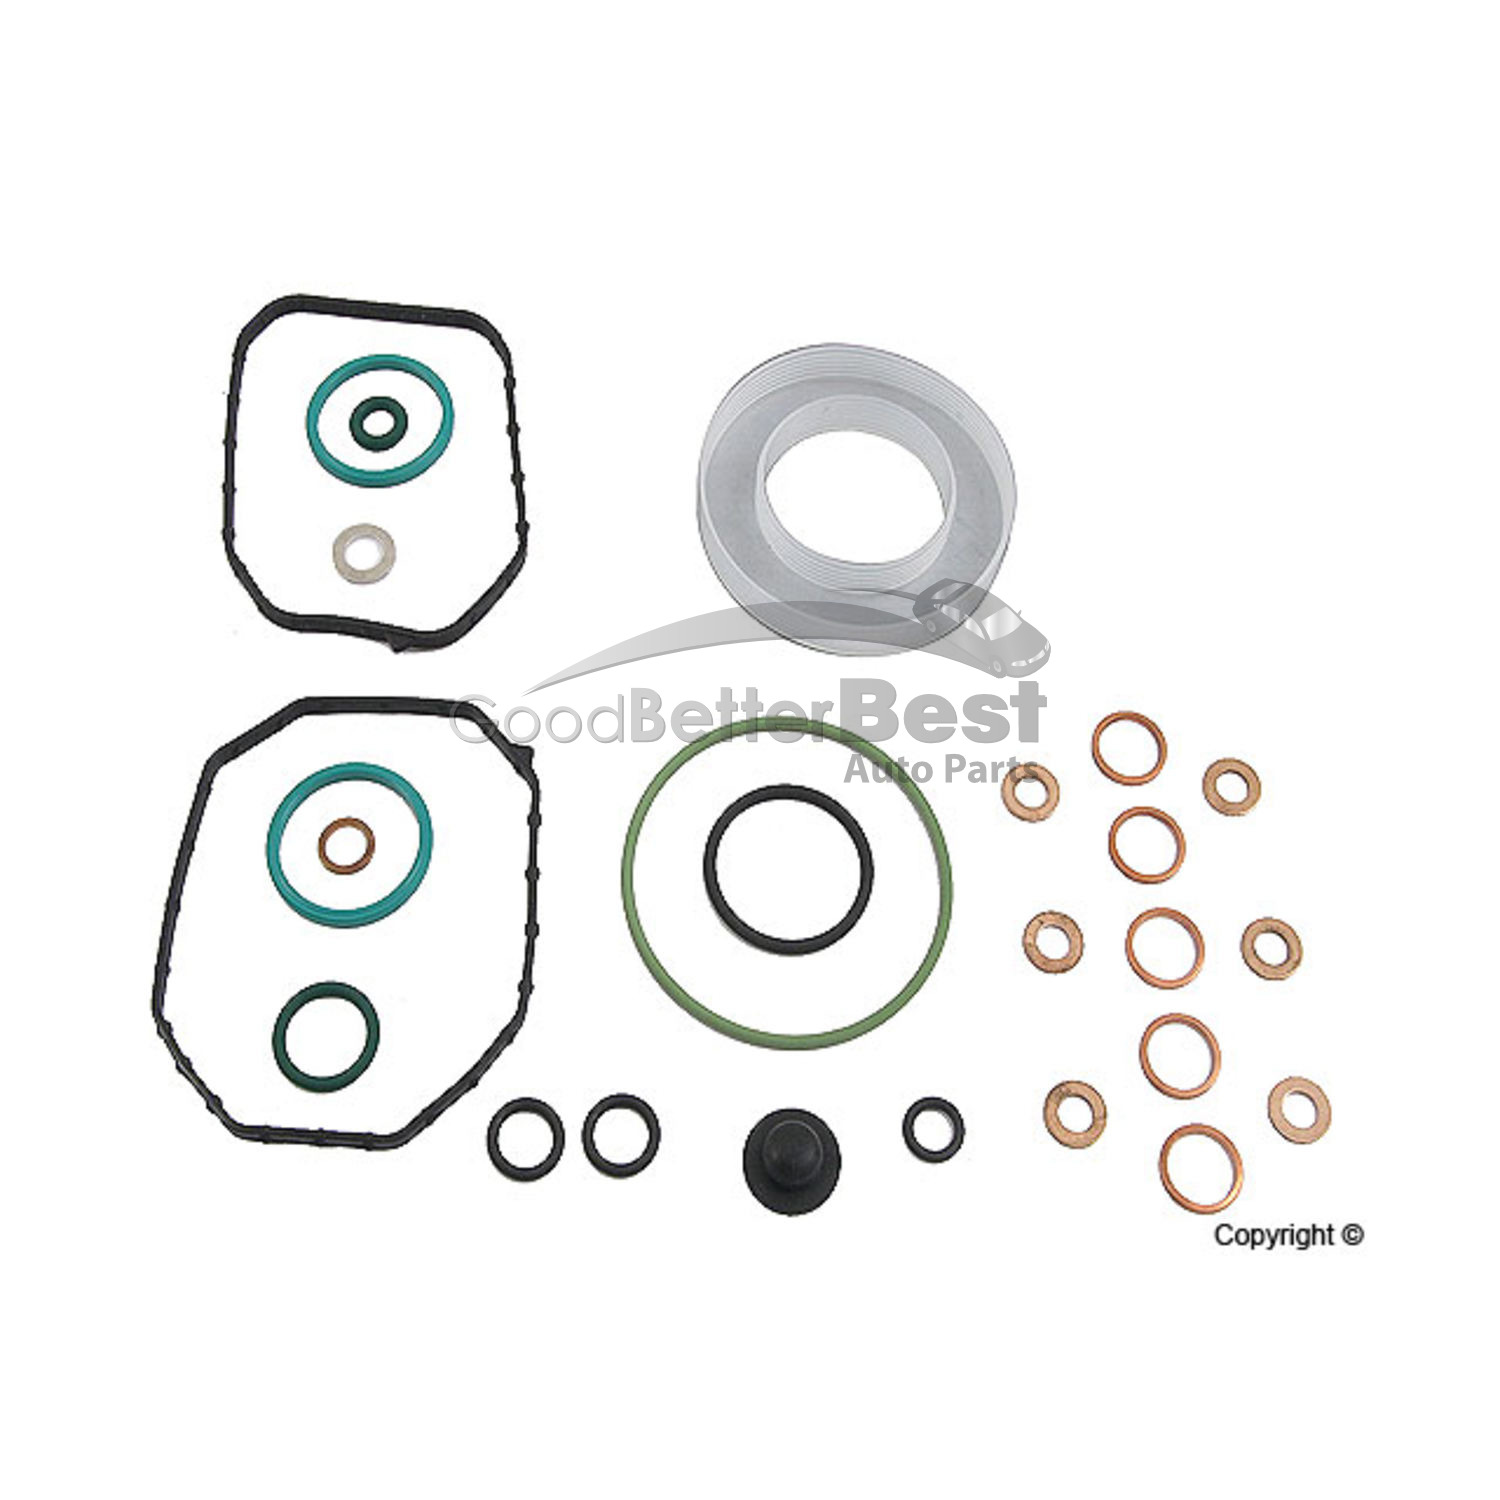 New Bosch Fuel Injection Pump Seal Kit For